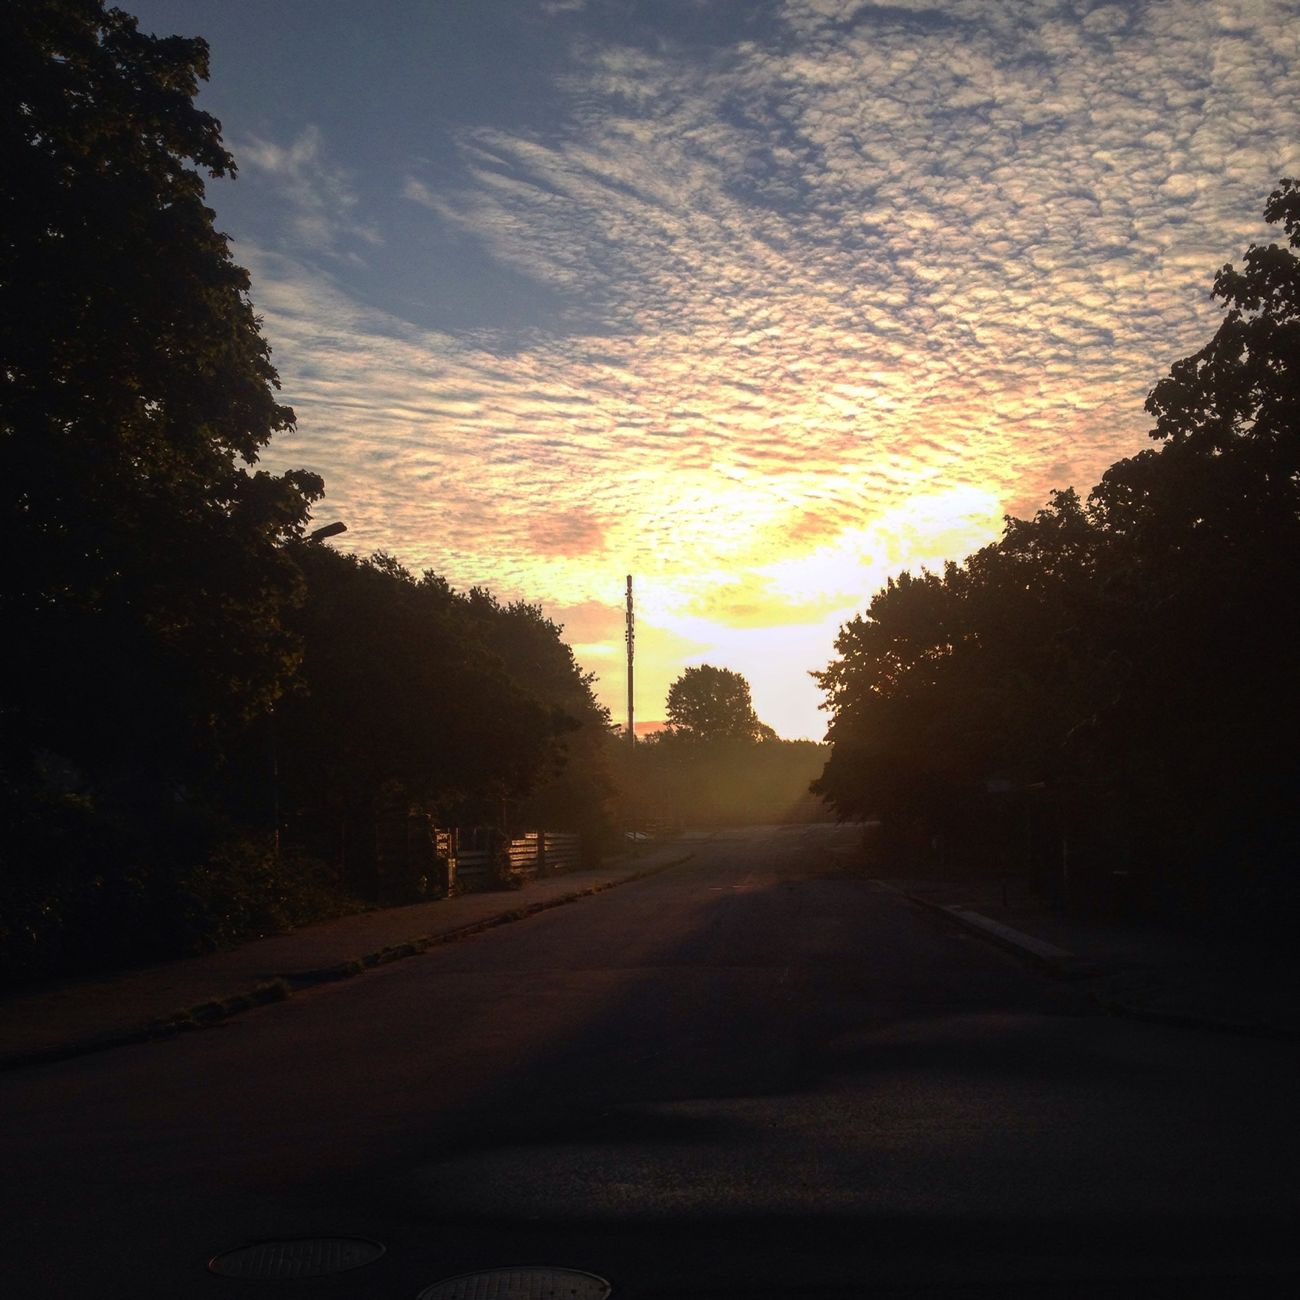 Sunrise, Oscarshem, Lund, Sweden, September 2015 Taking Photos Hello World